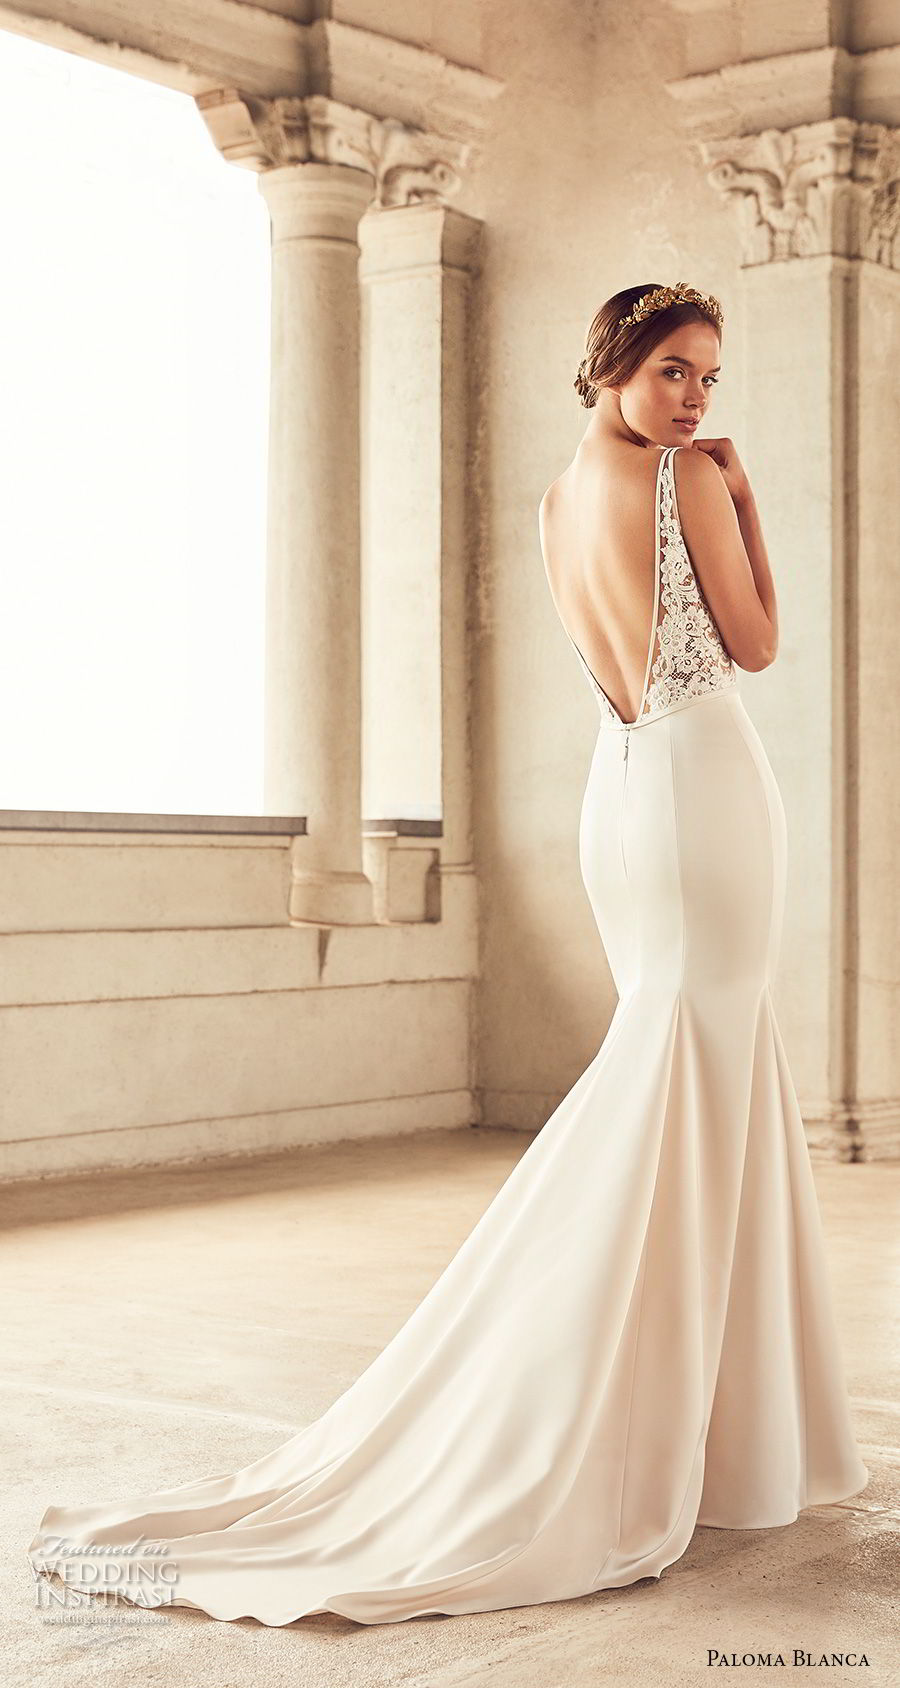 paloma blanca spring 2018 bridal sleeveless v neck heavily embellished bodice mermaid wedding dress open v back chapel train (16) bv